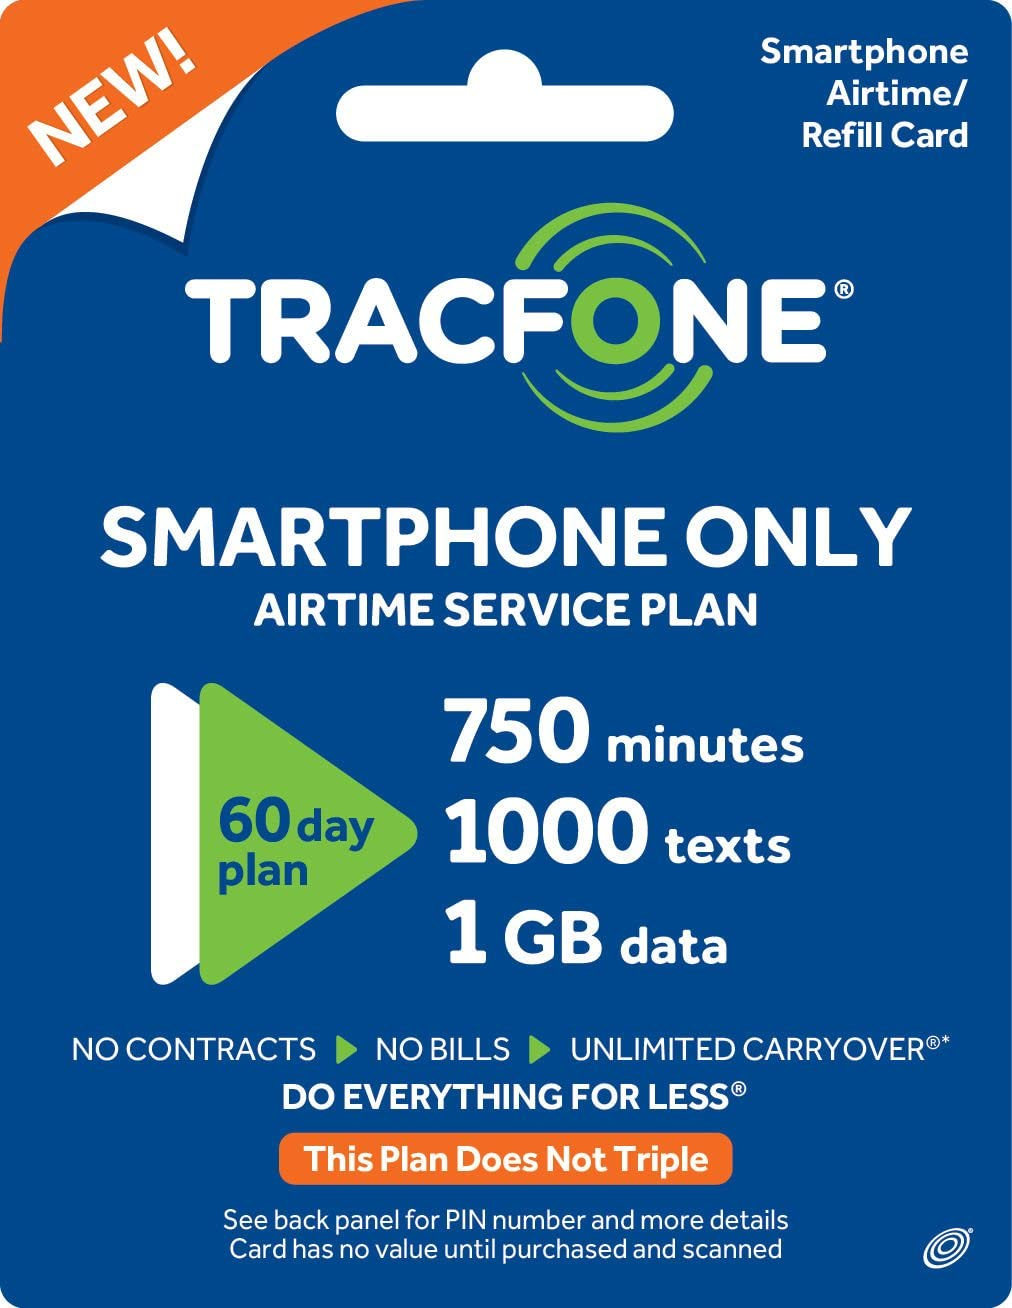 Tracfone Smartphone Only Airtime Service Plan - 60 Days, 750 Minutes, 1000 Texts, 1GB Data (Mail Delivery) 71ySiG1X68L